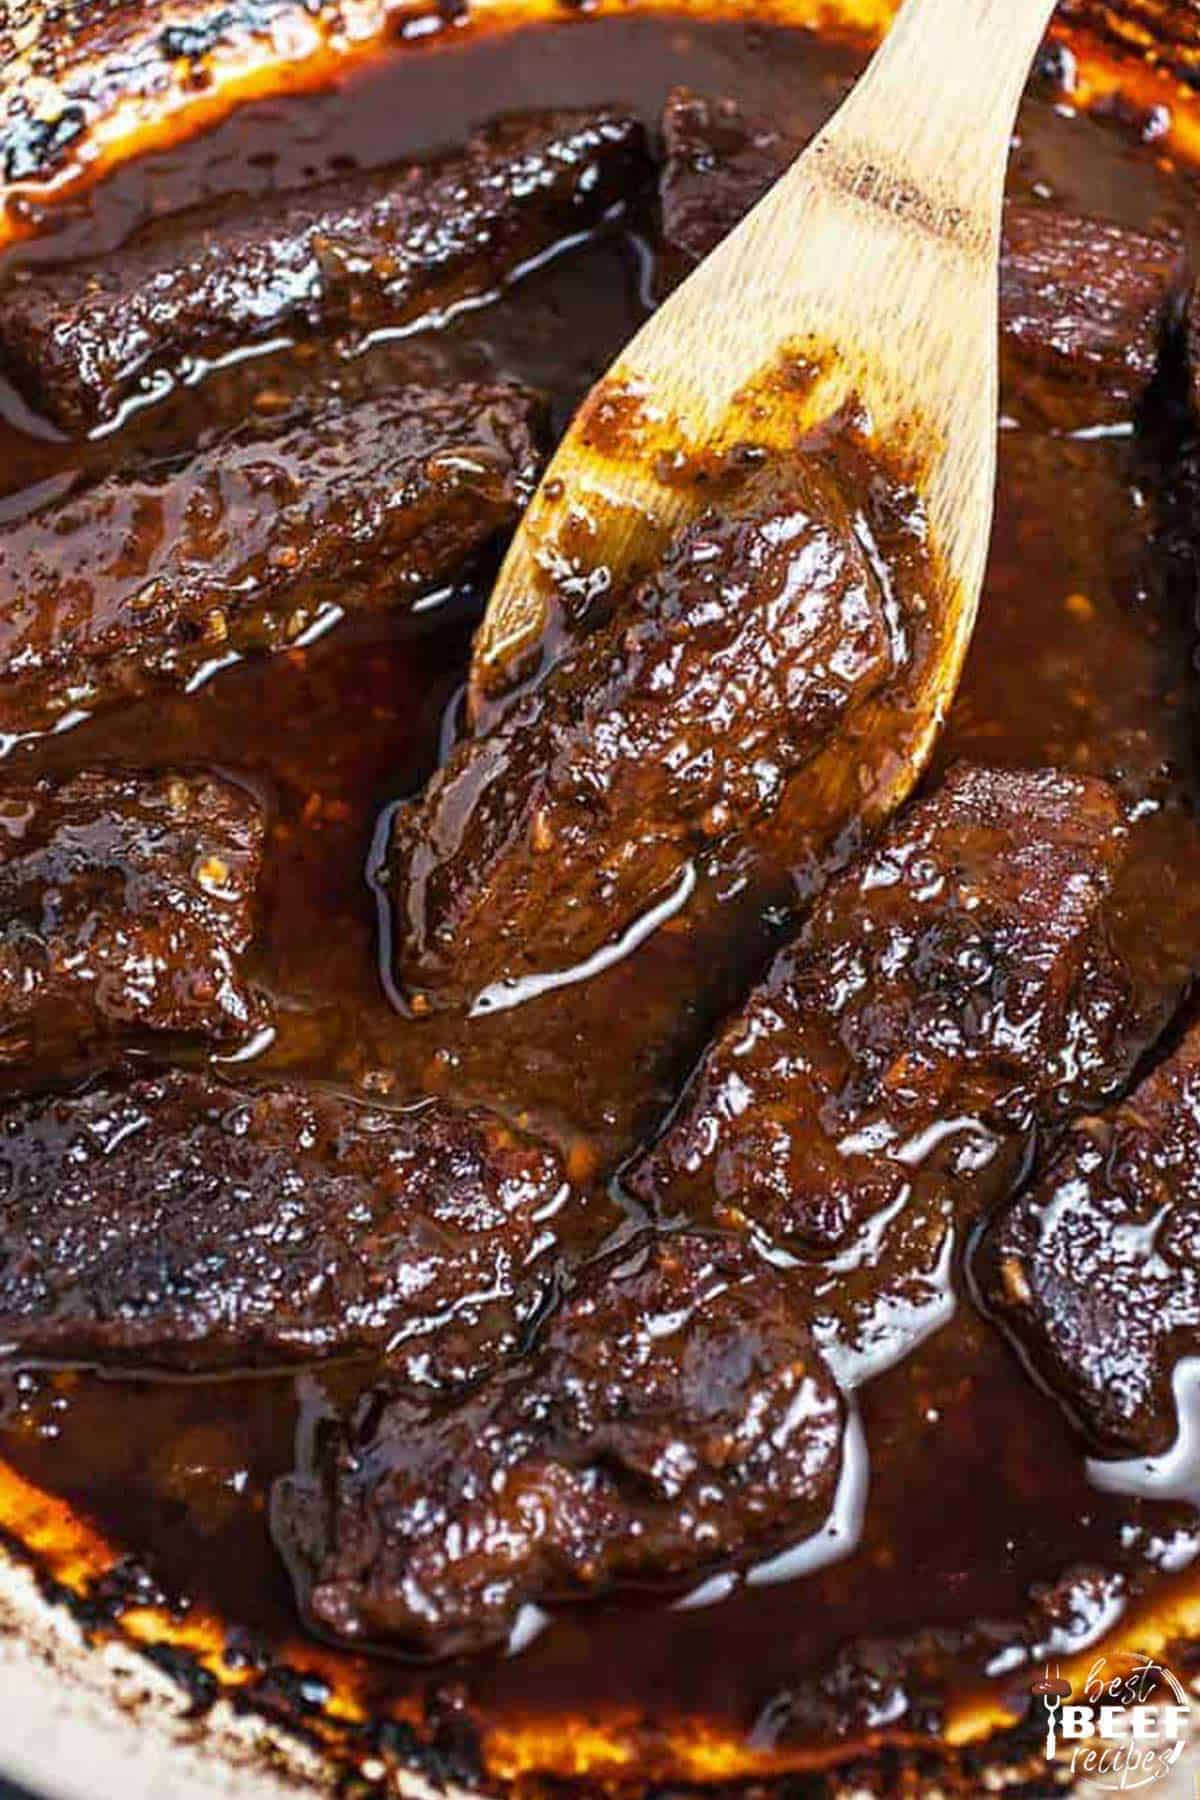 Cooked Korean beef short ribs with a wooden spoon in a Dutch oven